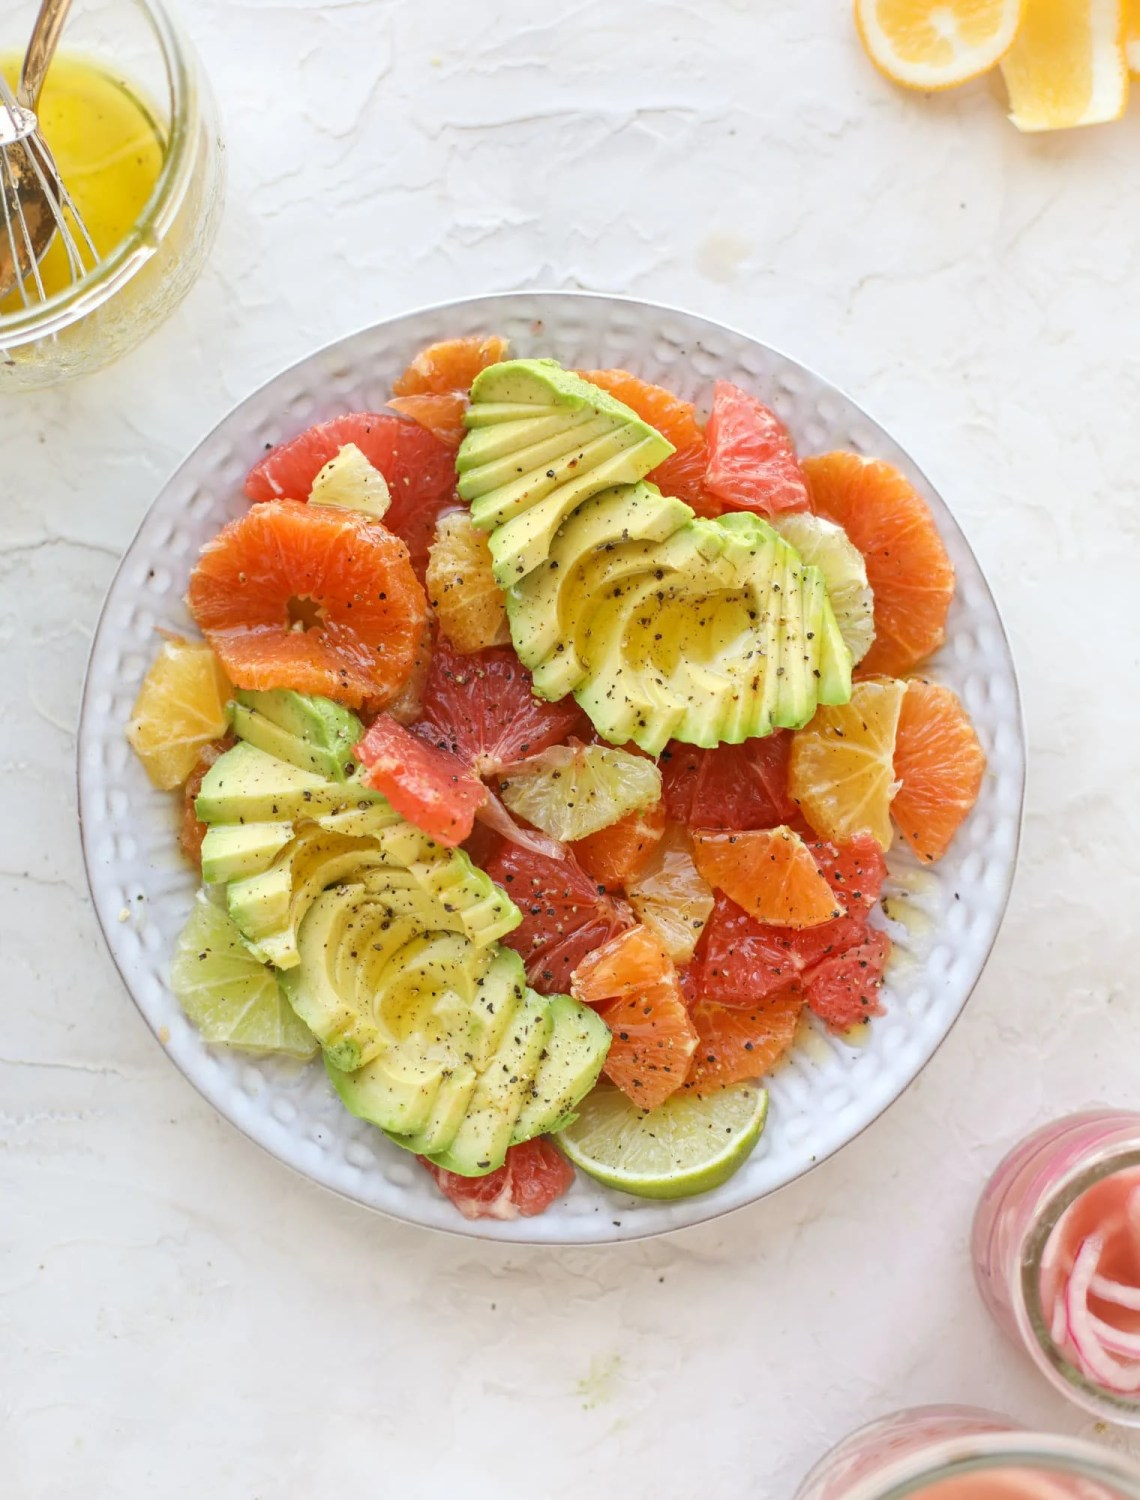 A deliciously fresh and invigorating avocado citrus salad with honey lime vinaigrette. It's creamy, tart, sweet and refreshing! I howsweeteats.com #avocado #citrussalad